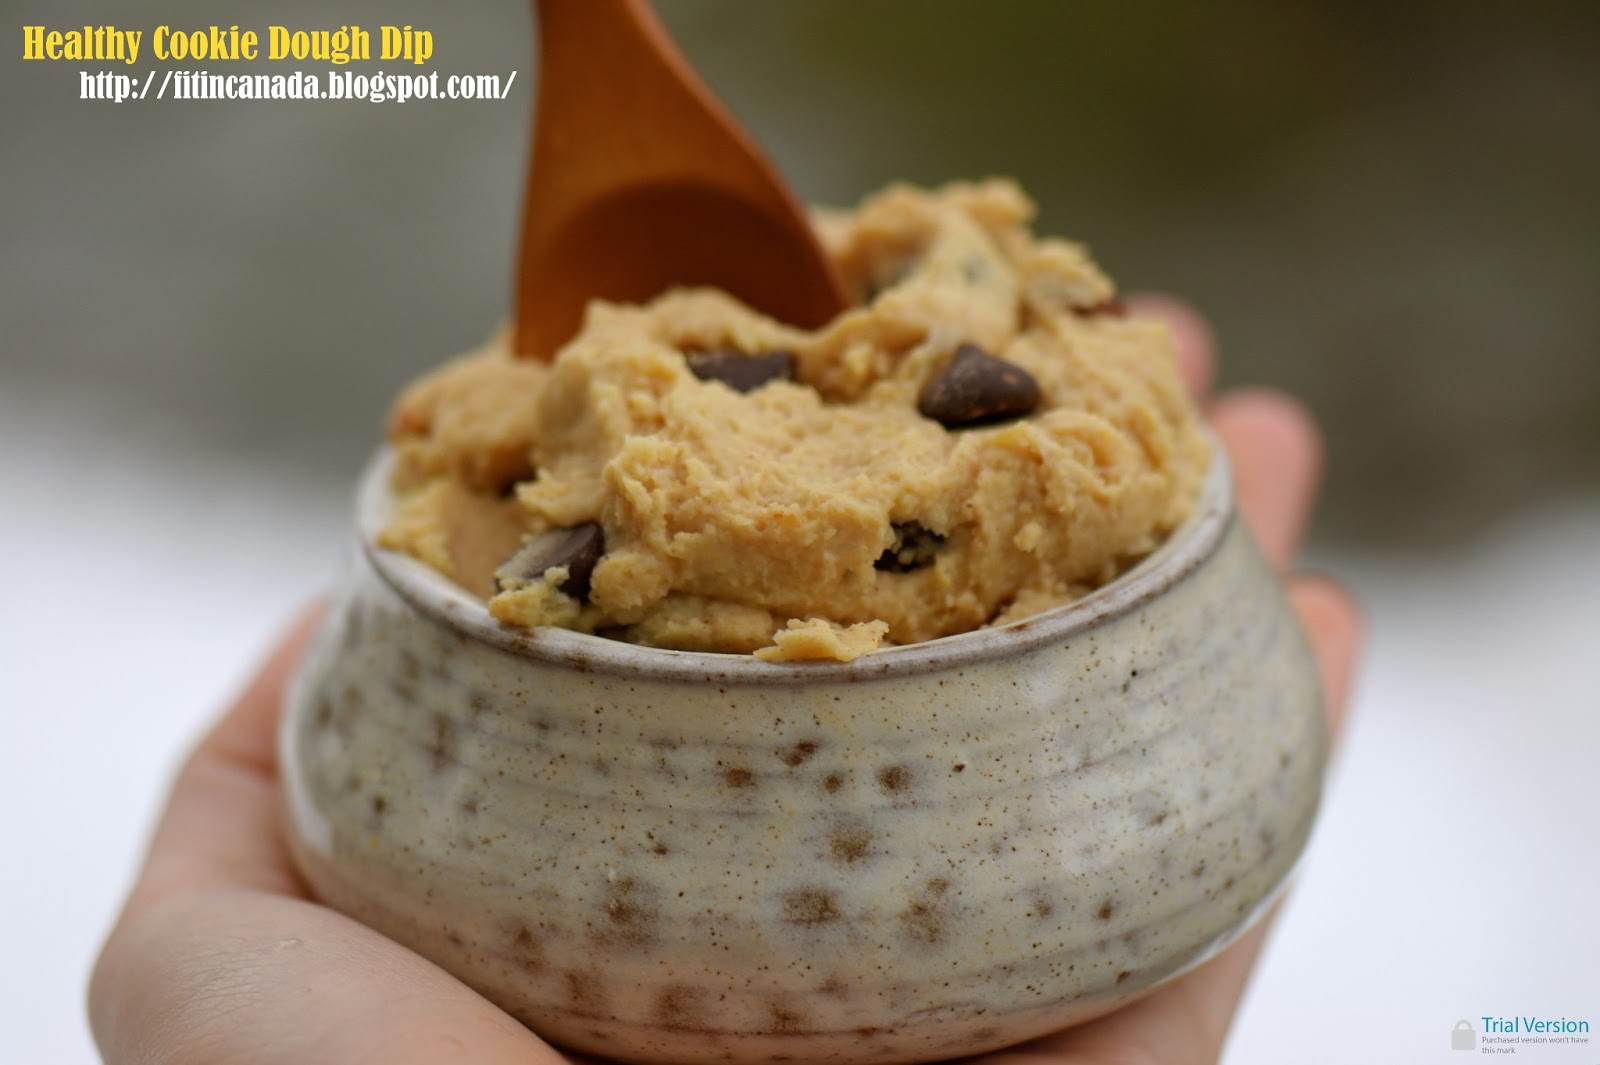 Healthy Cookie Dough Chocolate Chips Chocolate Chip Cookie Dough Lose ...